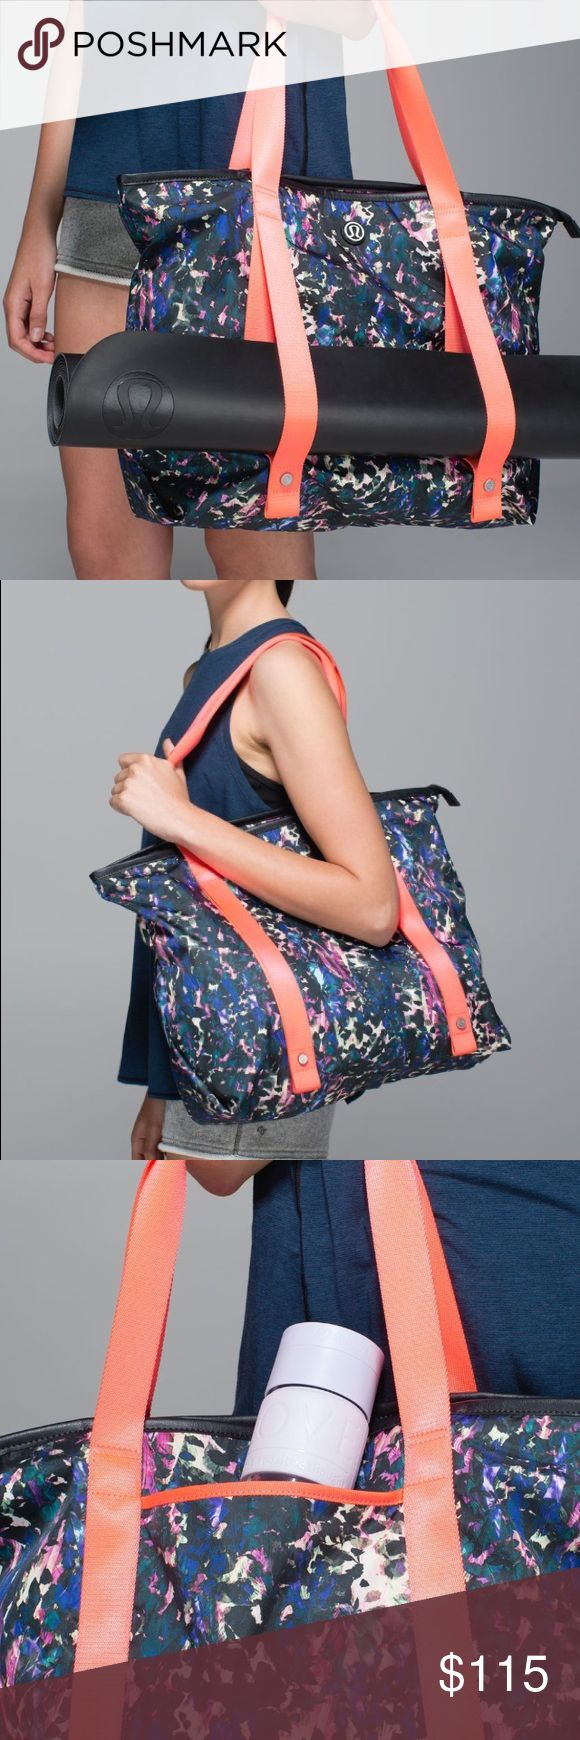 """•{Lululemon} Summer Lovin' Tote• Lululemon Summer Lovin' Tote. In Floral Backdrop Black Multi. A great bag in Great Used Condition! """"We use this lightweight tote to take us from the beach to Sun Salutations all summer long. Made of durable, water-resistant fabric with plenty of pockets, it stands up to all of our adventures in the sand and the studio."""" Unsnap the front straps to hold your yoga mat or towel. Phone & water bottle pocket. 15.75"""" x 15"""" x 6"""". Only flaw to mention is the clear…"""